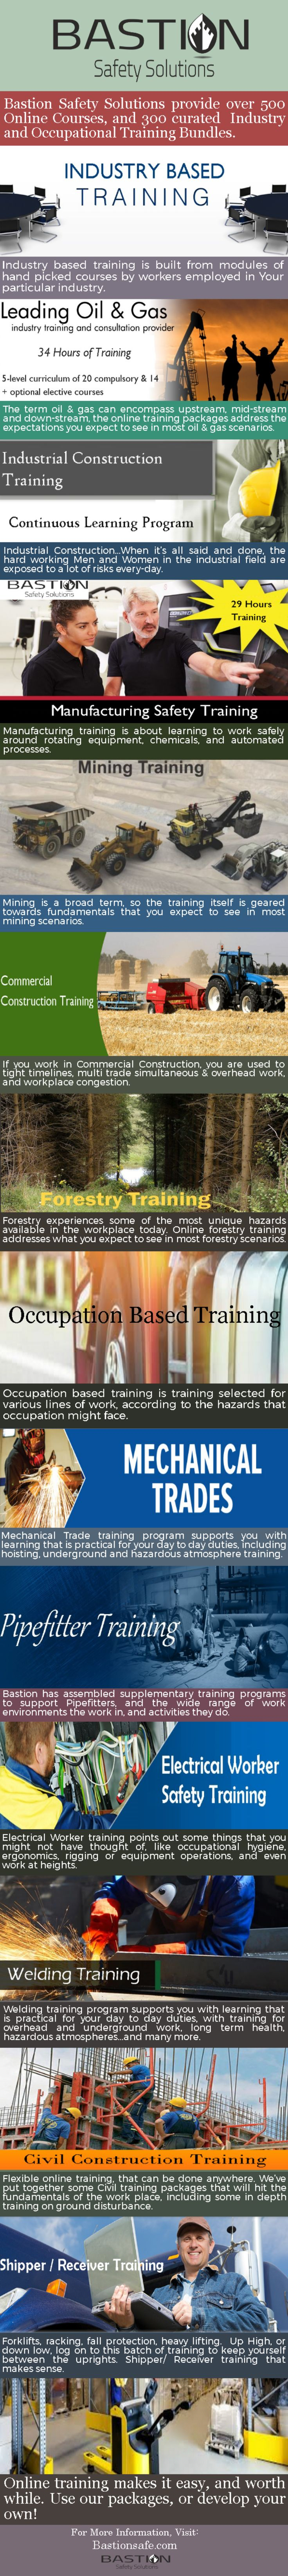 Online #Safety Industry Based Training